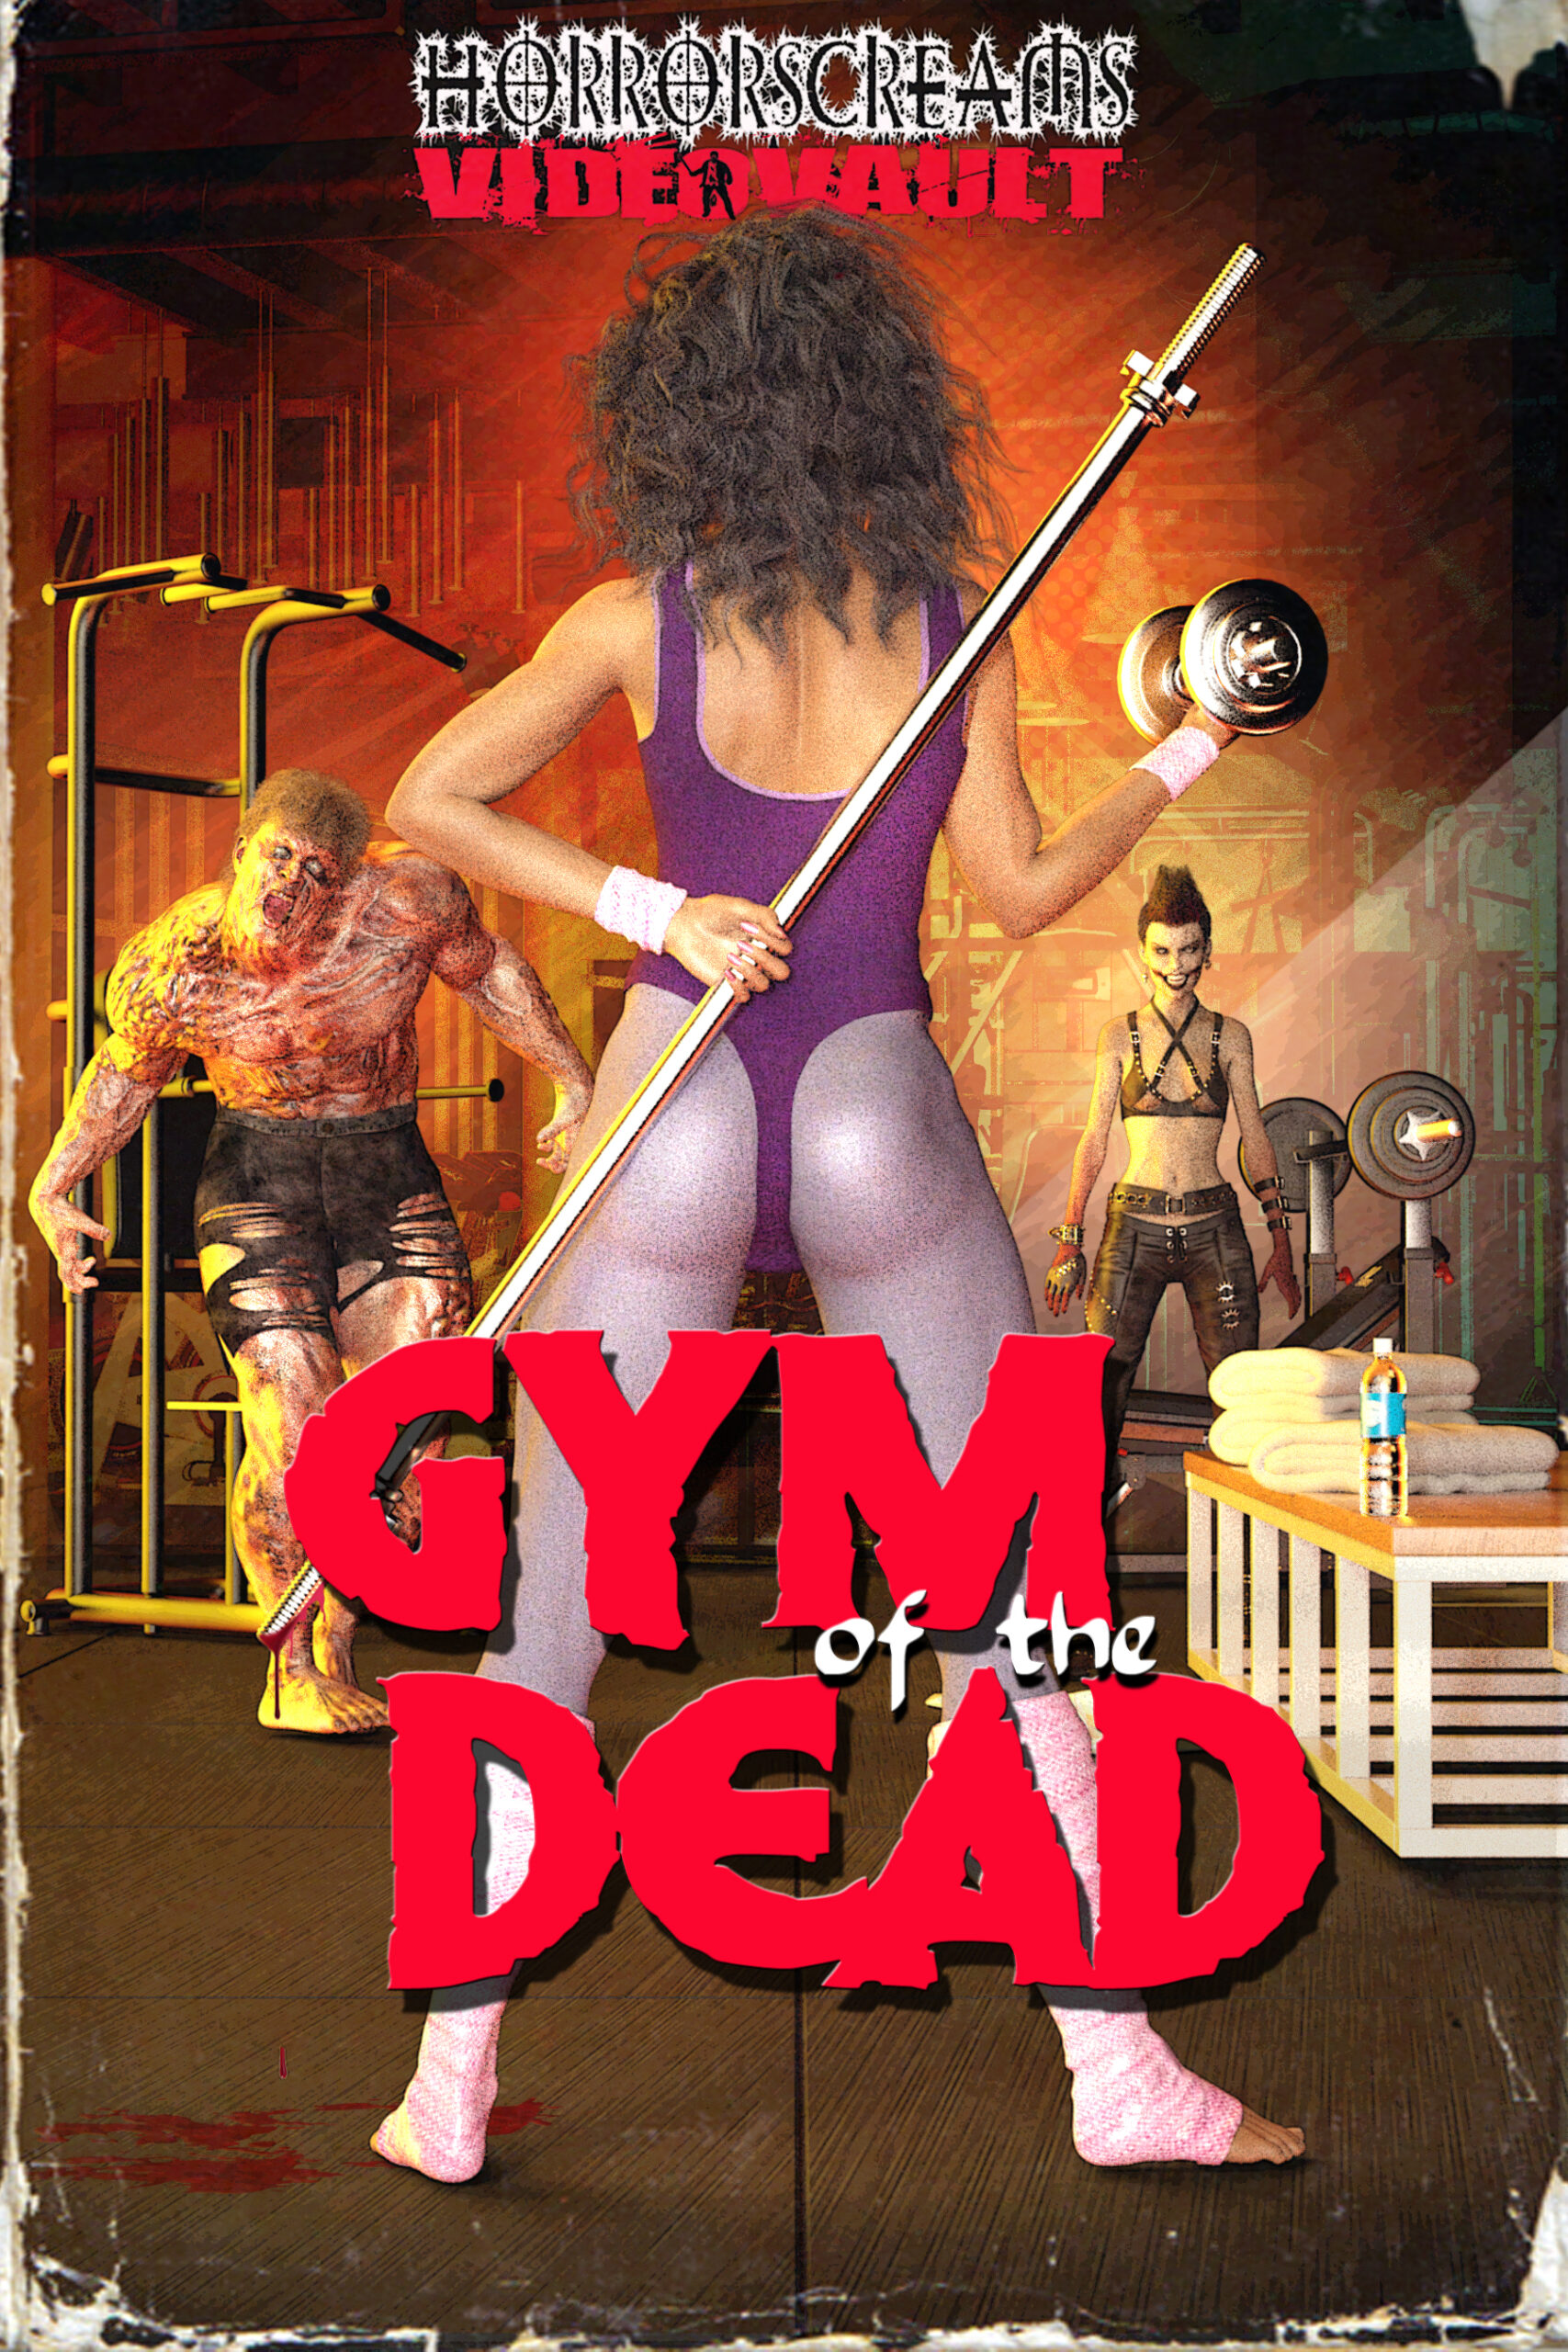 MEGA CAST REVEALED FOR ZOMBIE COMEDY HORROR FILM 'GYM OF THE DEAD'